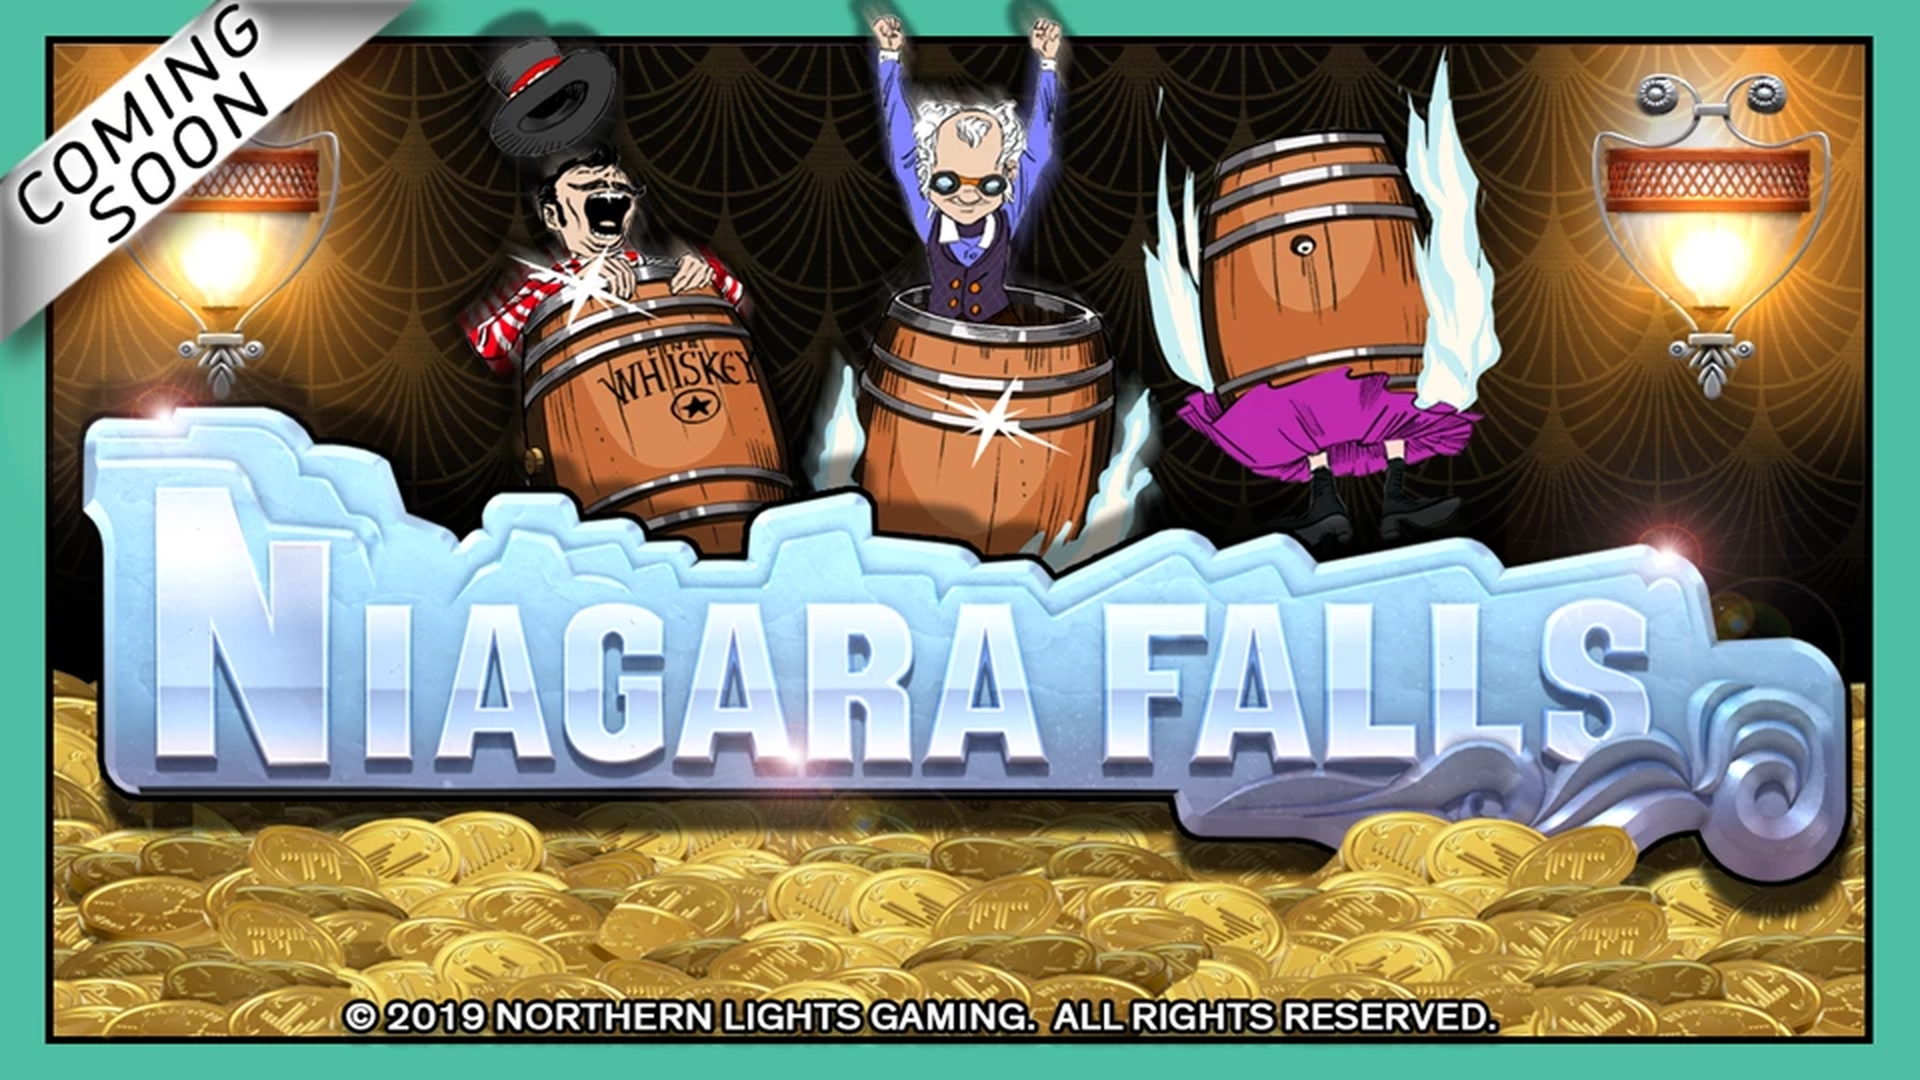 The Niagara Falls Online Slot Demo Game by Northern Lights Gaming